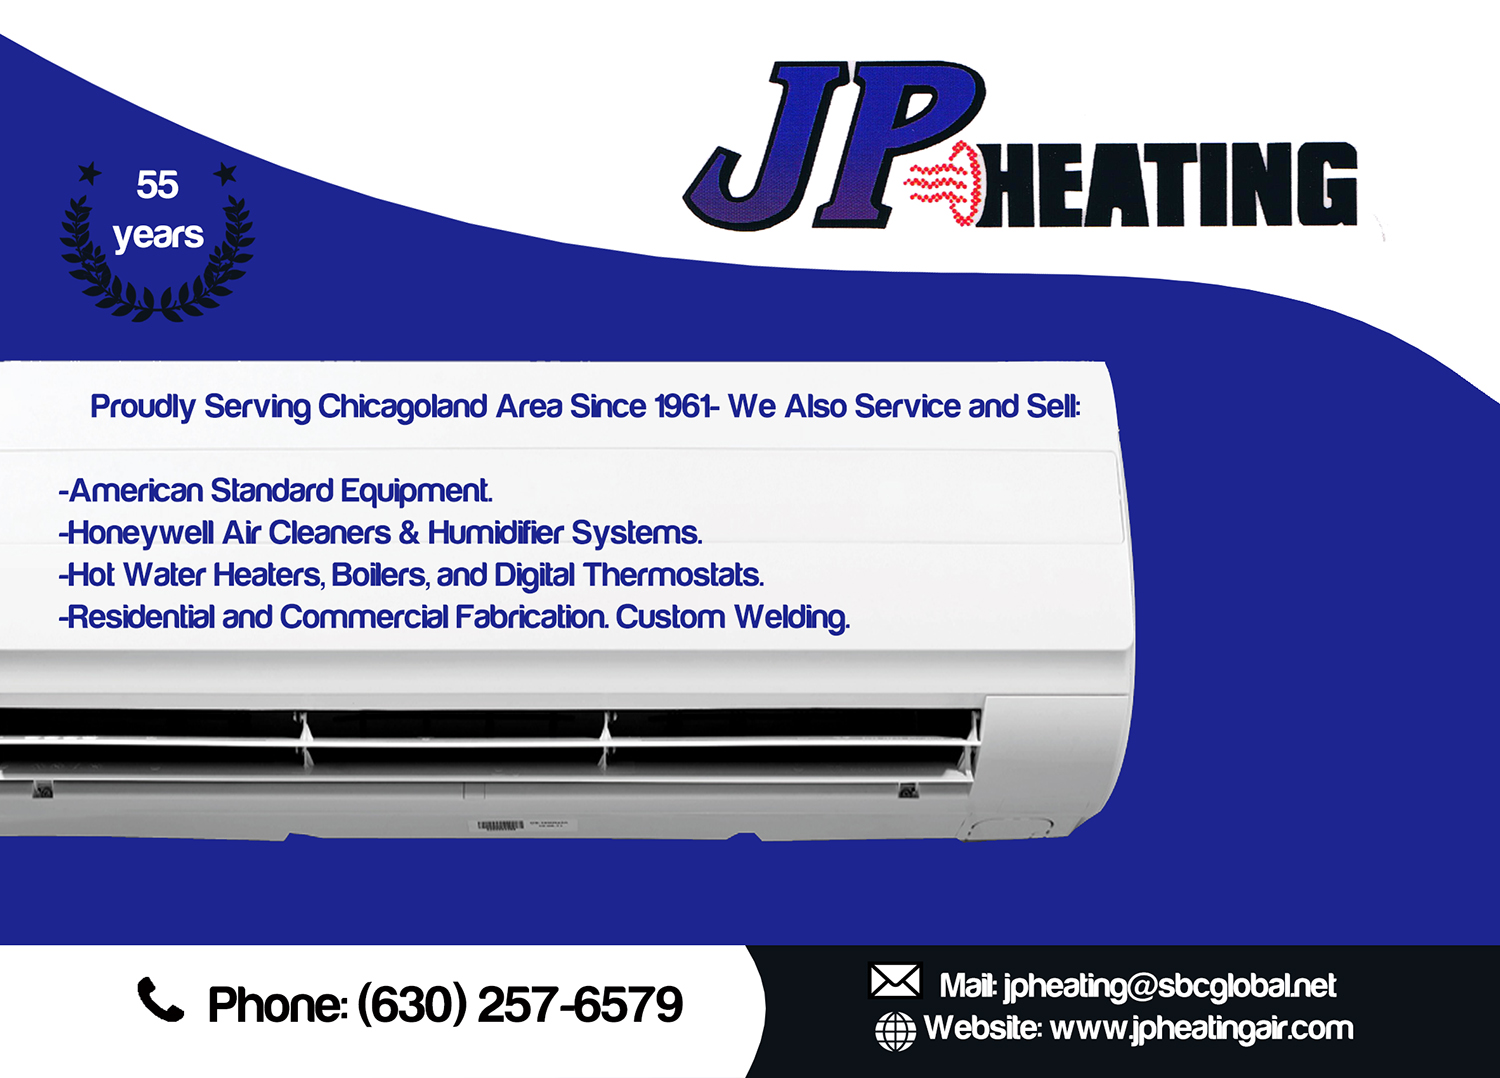 Professional, Bold, Air Conditioning Postcard Design for JP Heating ...